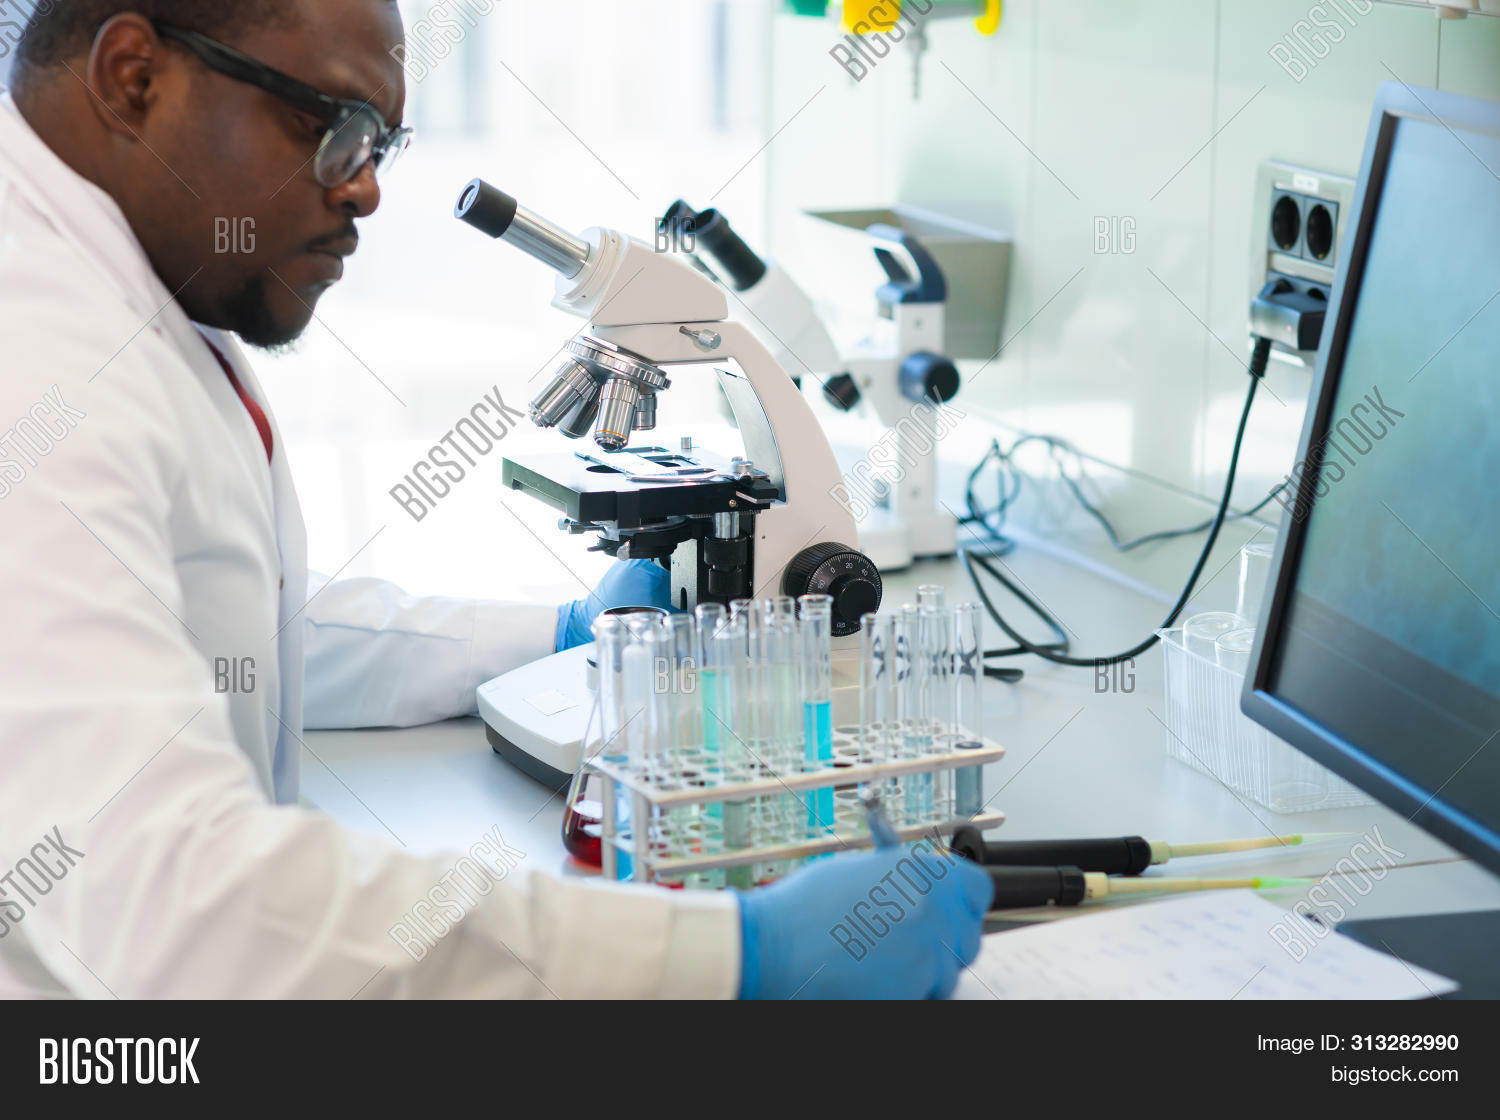 african american,analyzing,assistant,background,bacterium,bio,biochemistry,biology,biotechnology,black,chemical,chemistry,clinic,concept,day light,discovery,doctor,drugs,equipment,experiment,genetic,healthcare,innovate,lab,laboratory,man,medical,micro scope,microbiology,microscope,occupation,person,pharmaceutical,professional,professor,research,results,sample,science,scientific,scientists,student,survey,technology,test tube,tools,vaccine,virus,window,worker